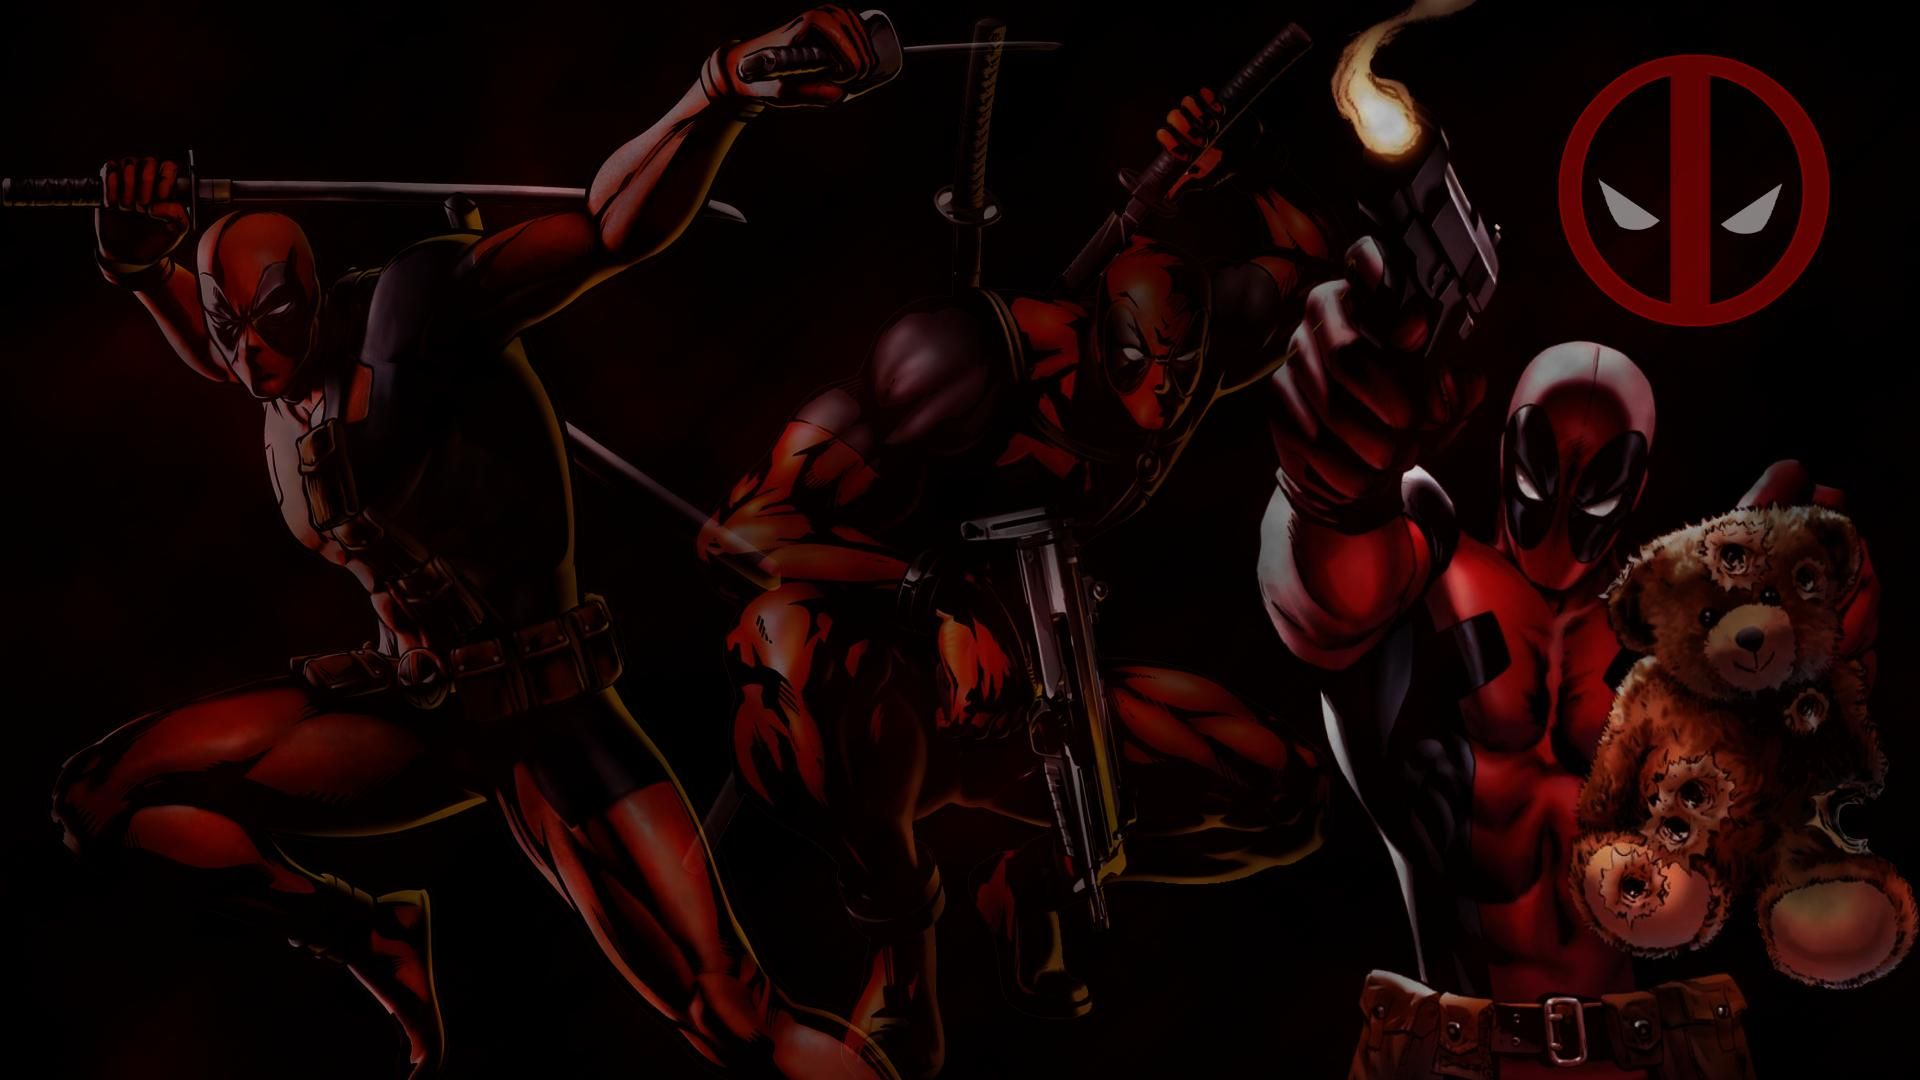 Download Free HD Wallpapers of Deadpool Movie ~ Download 1920×1080 Deadpool Wallpapers HD (46 Wallpapers) | Adorable Wallpapers